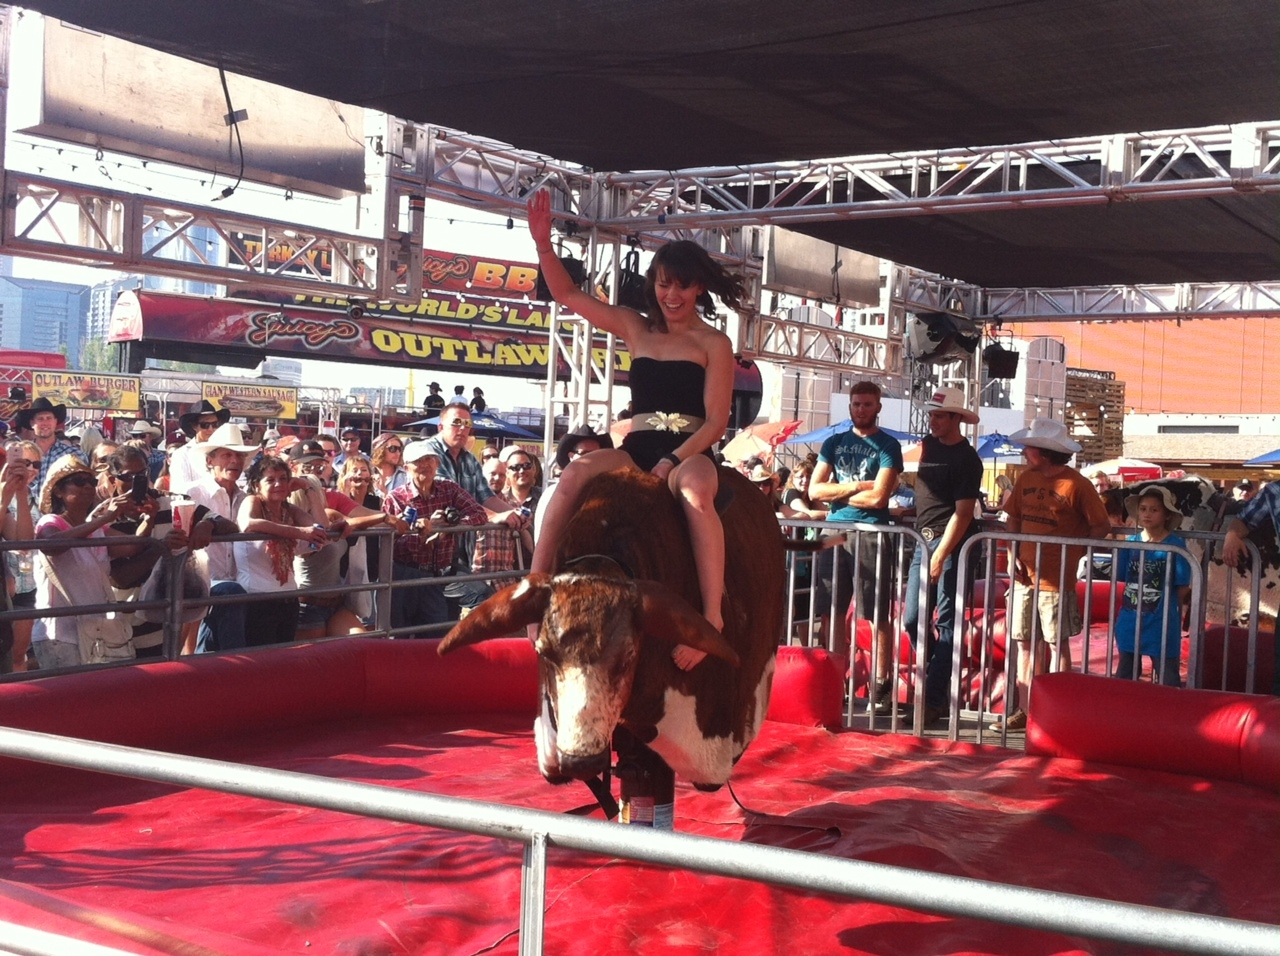 The addition of the mechanical bulls was very popular with young and old.  I saw individuals from 6 to 60 give it a try. I did not!